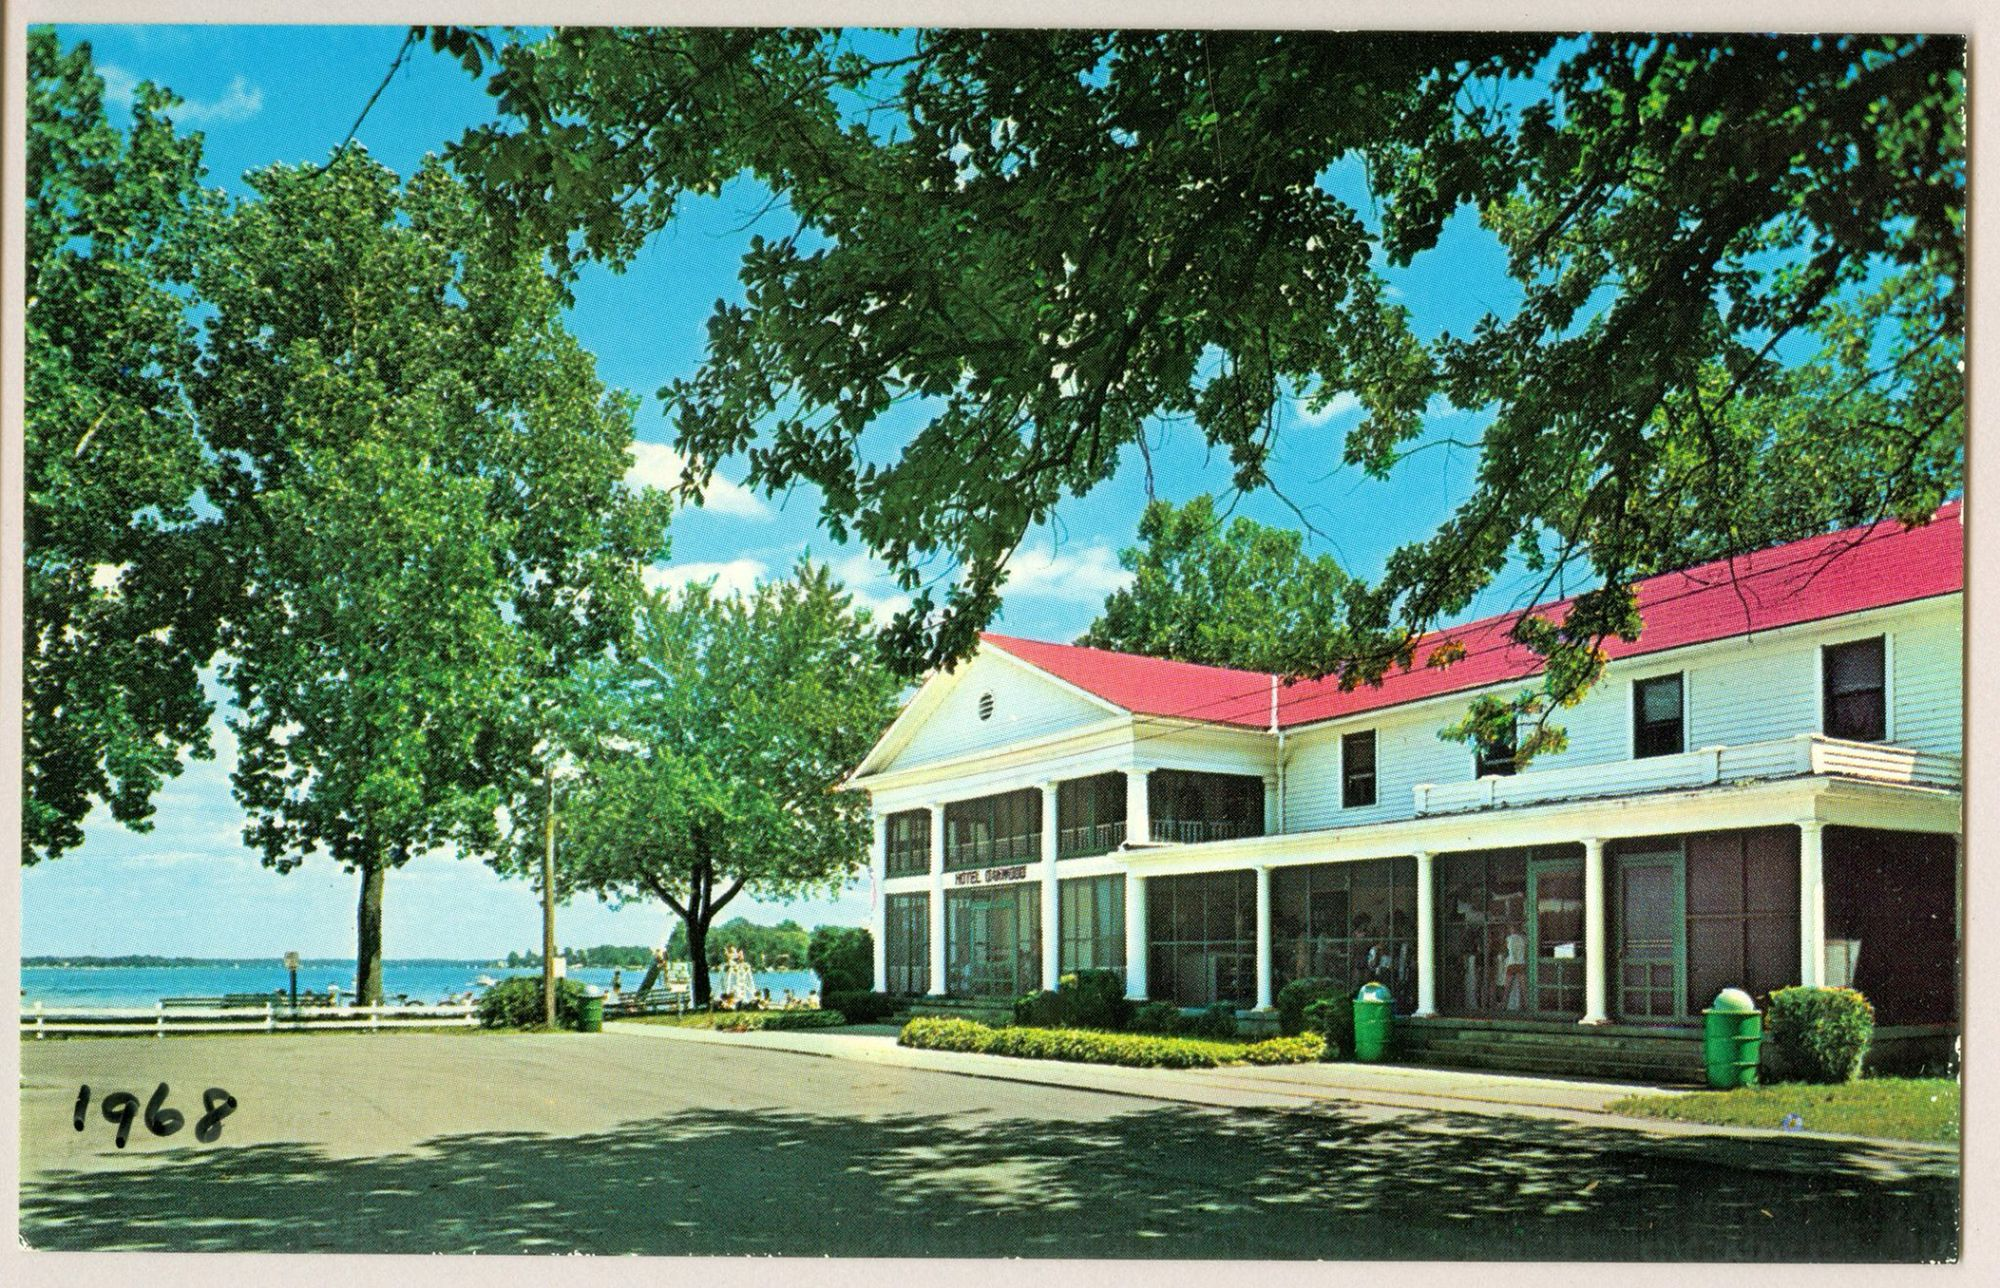 Oakwood Hotel Lake Wawasee Syracuse Indiana Circa 1968 Fond Childhood Memories